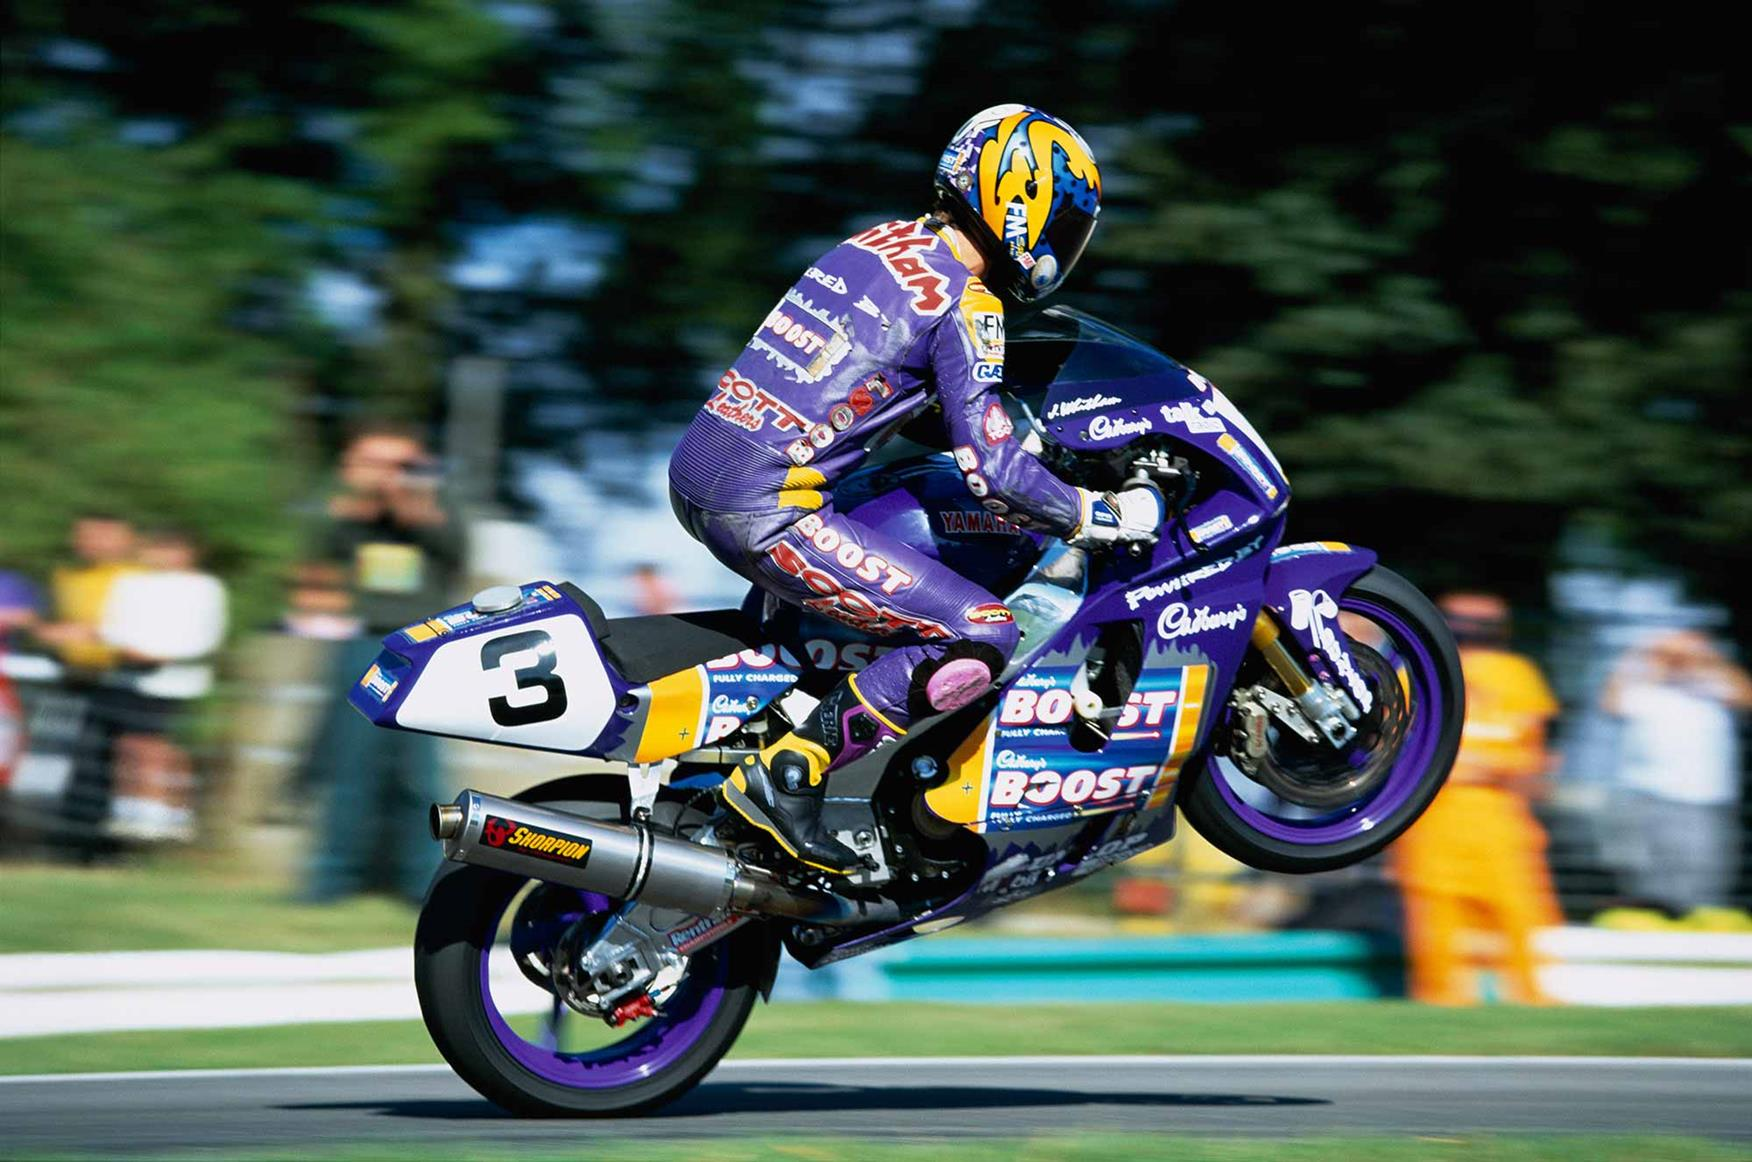 James Whitham jumps the mountain at Cadwell Park in 1996